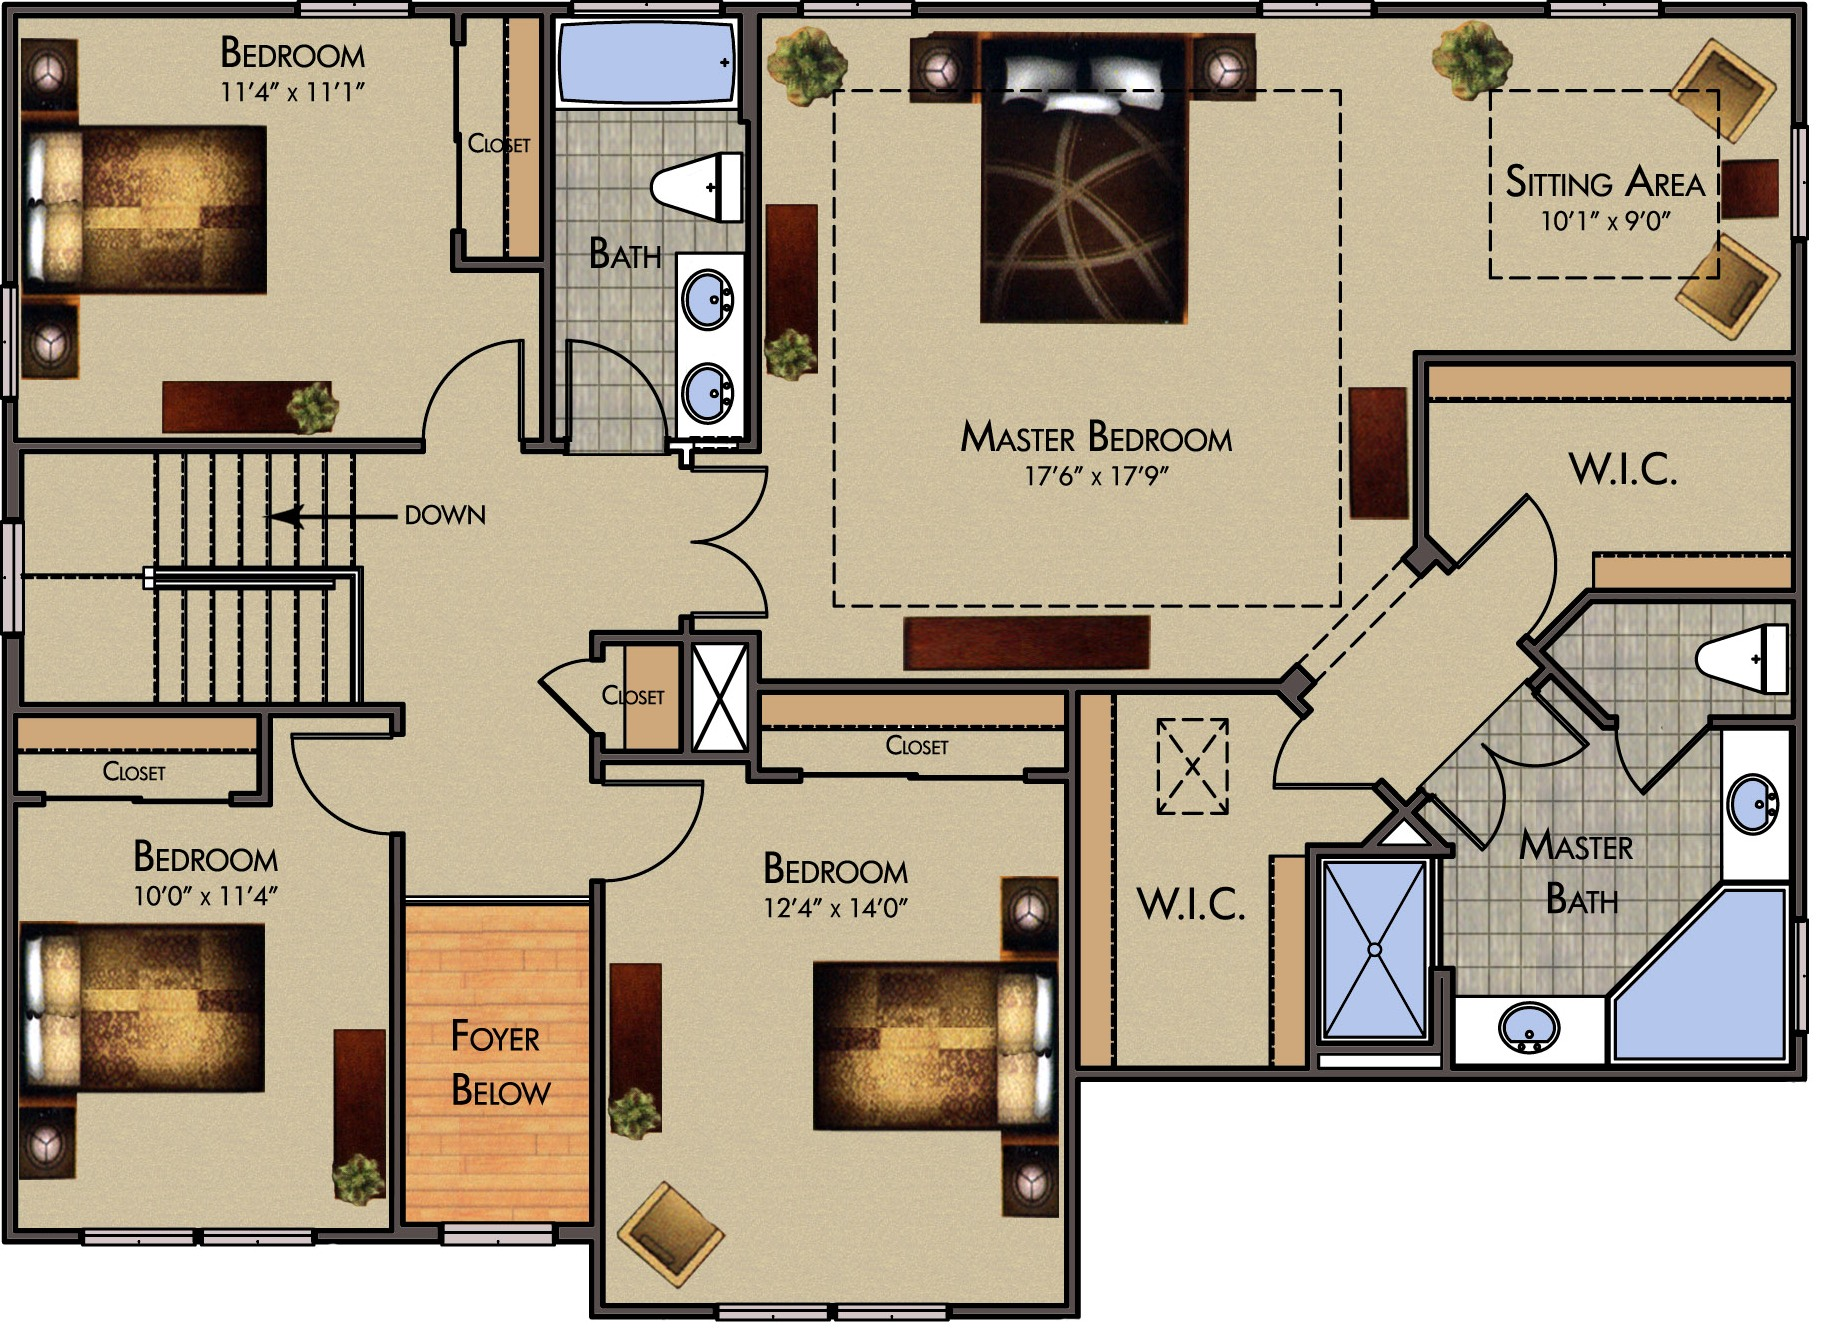 second floor floor plans photo album typatcom - Second Floor Floor Plans